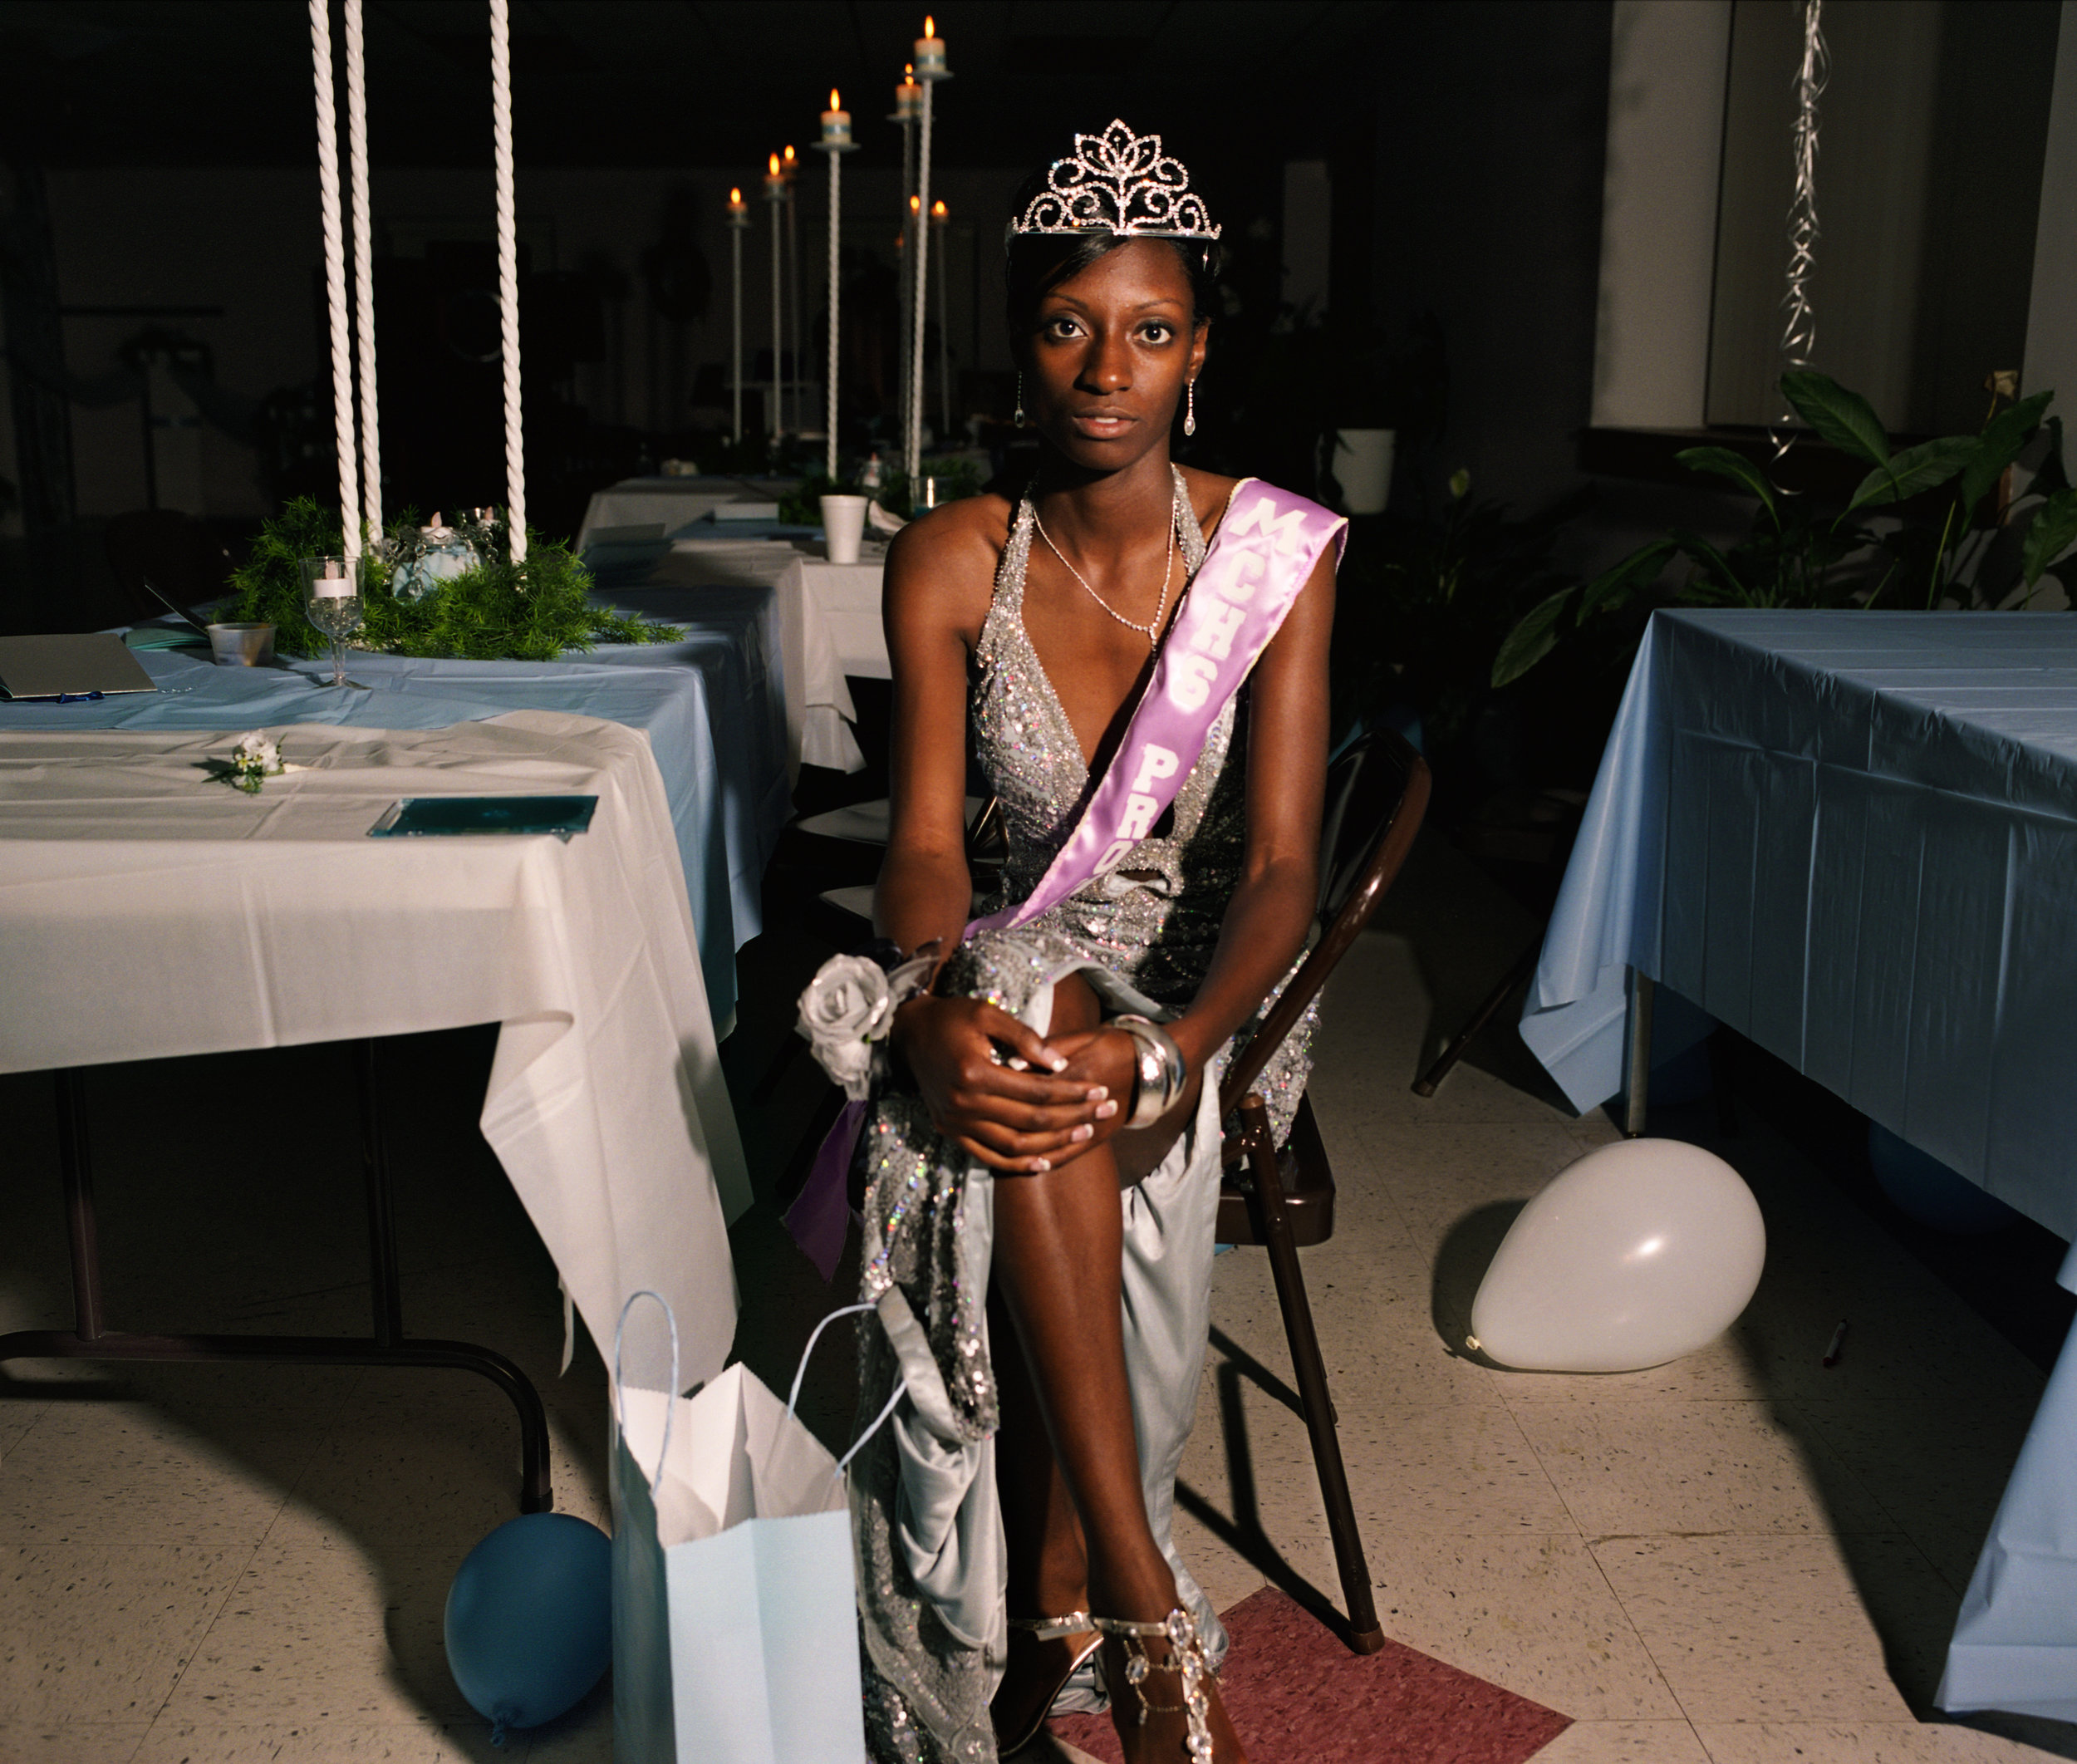 Lacy, the black prom queen, Mount Vernon, Georgia, 2008